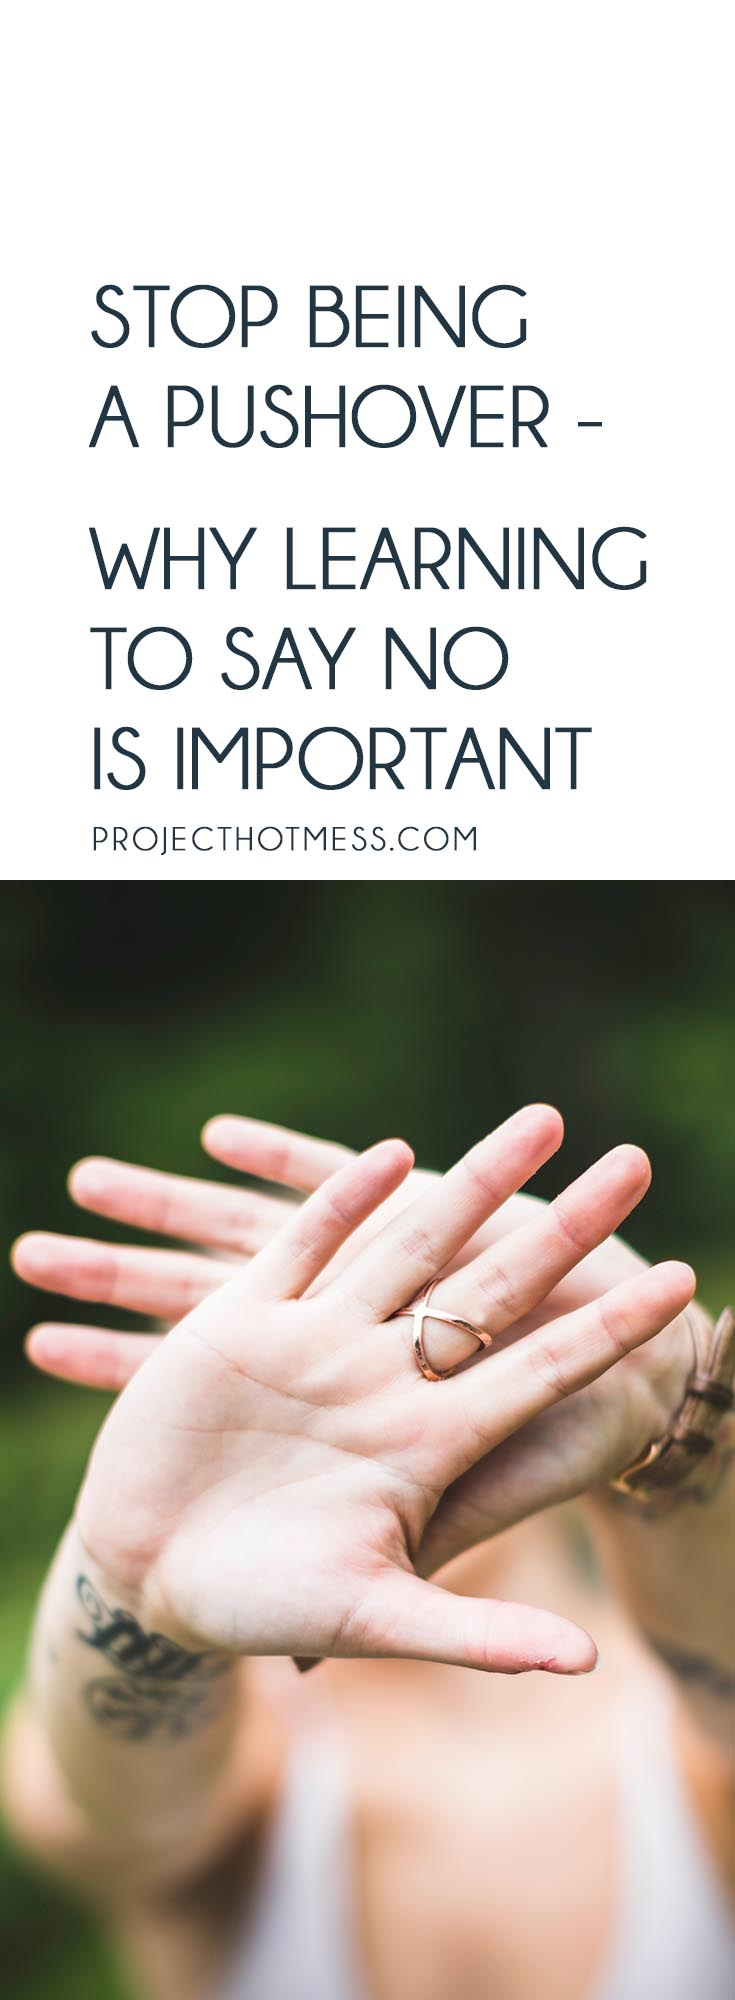 When was the last time you said 'no' to someone? Do you need to stop being a pushover? Learning how to say no is so important - for you and for your family.